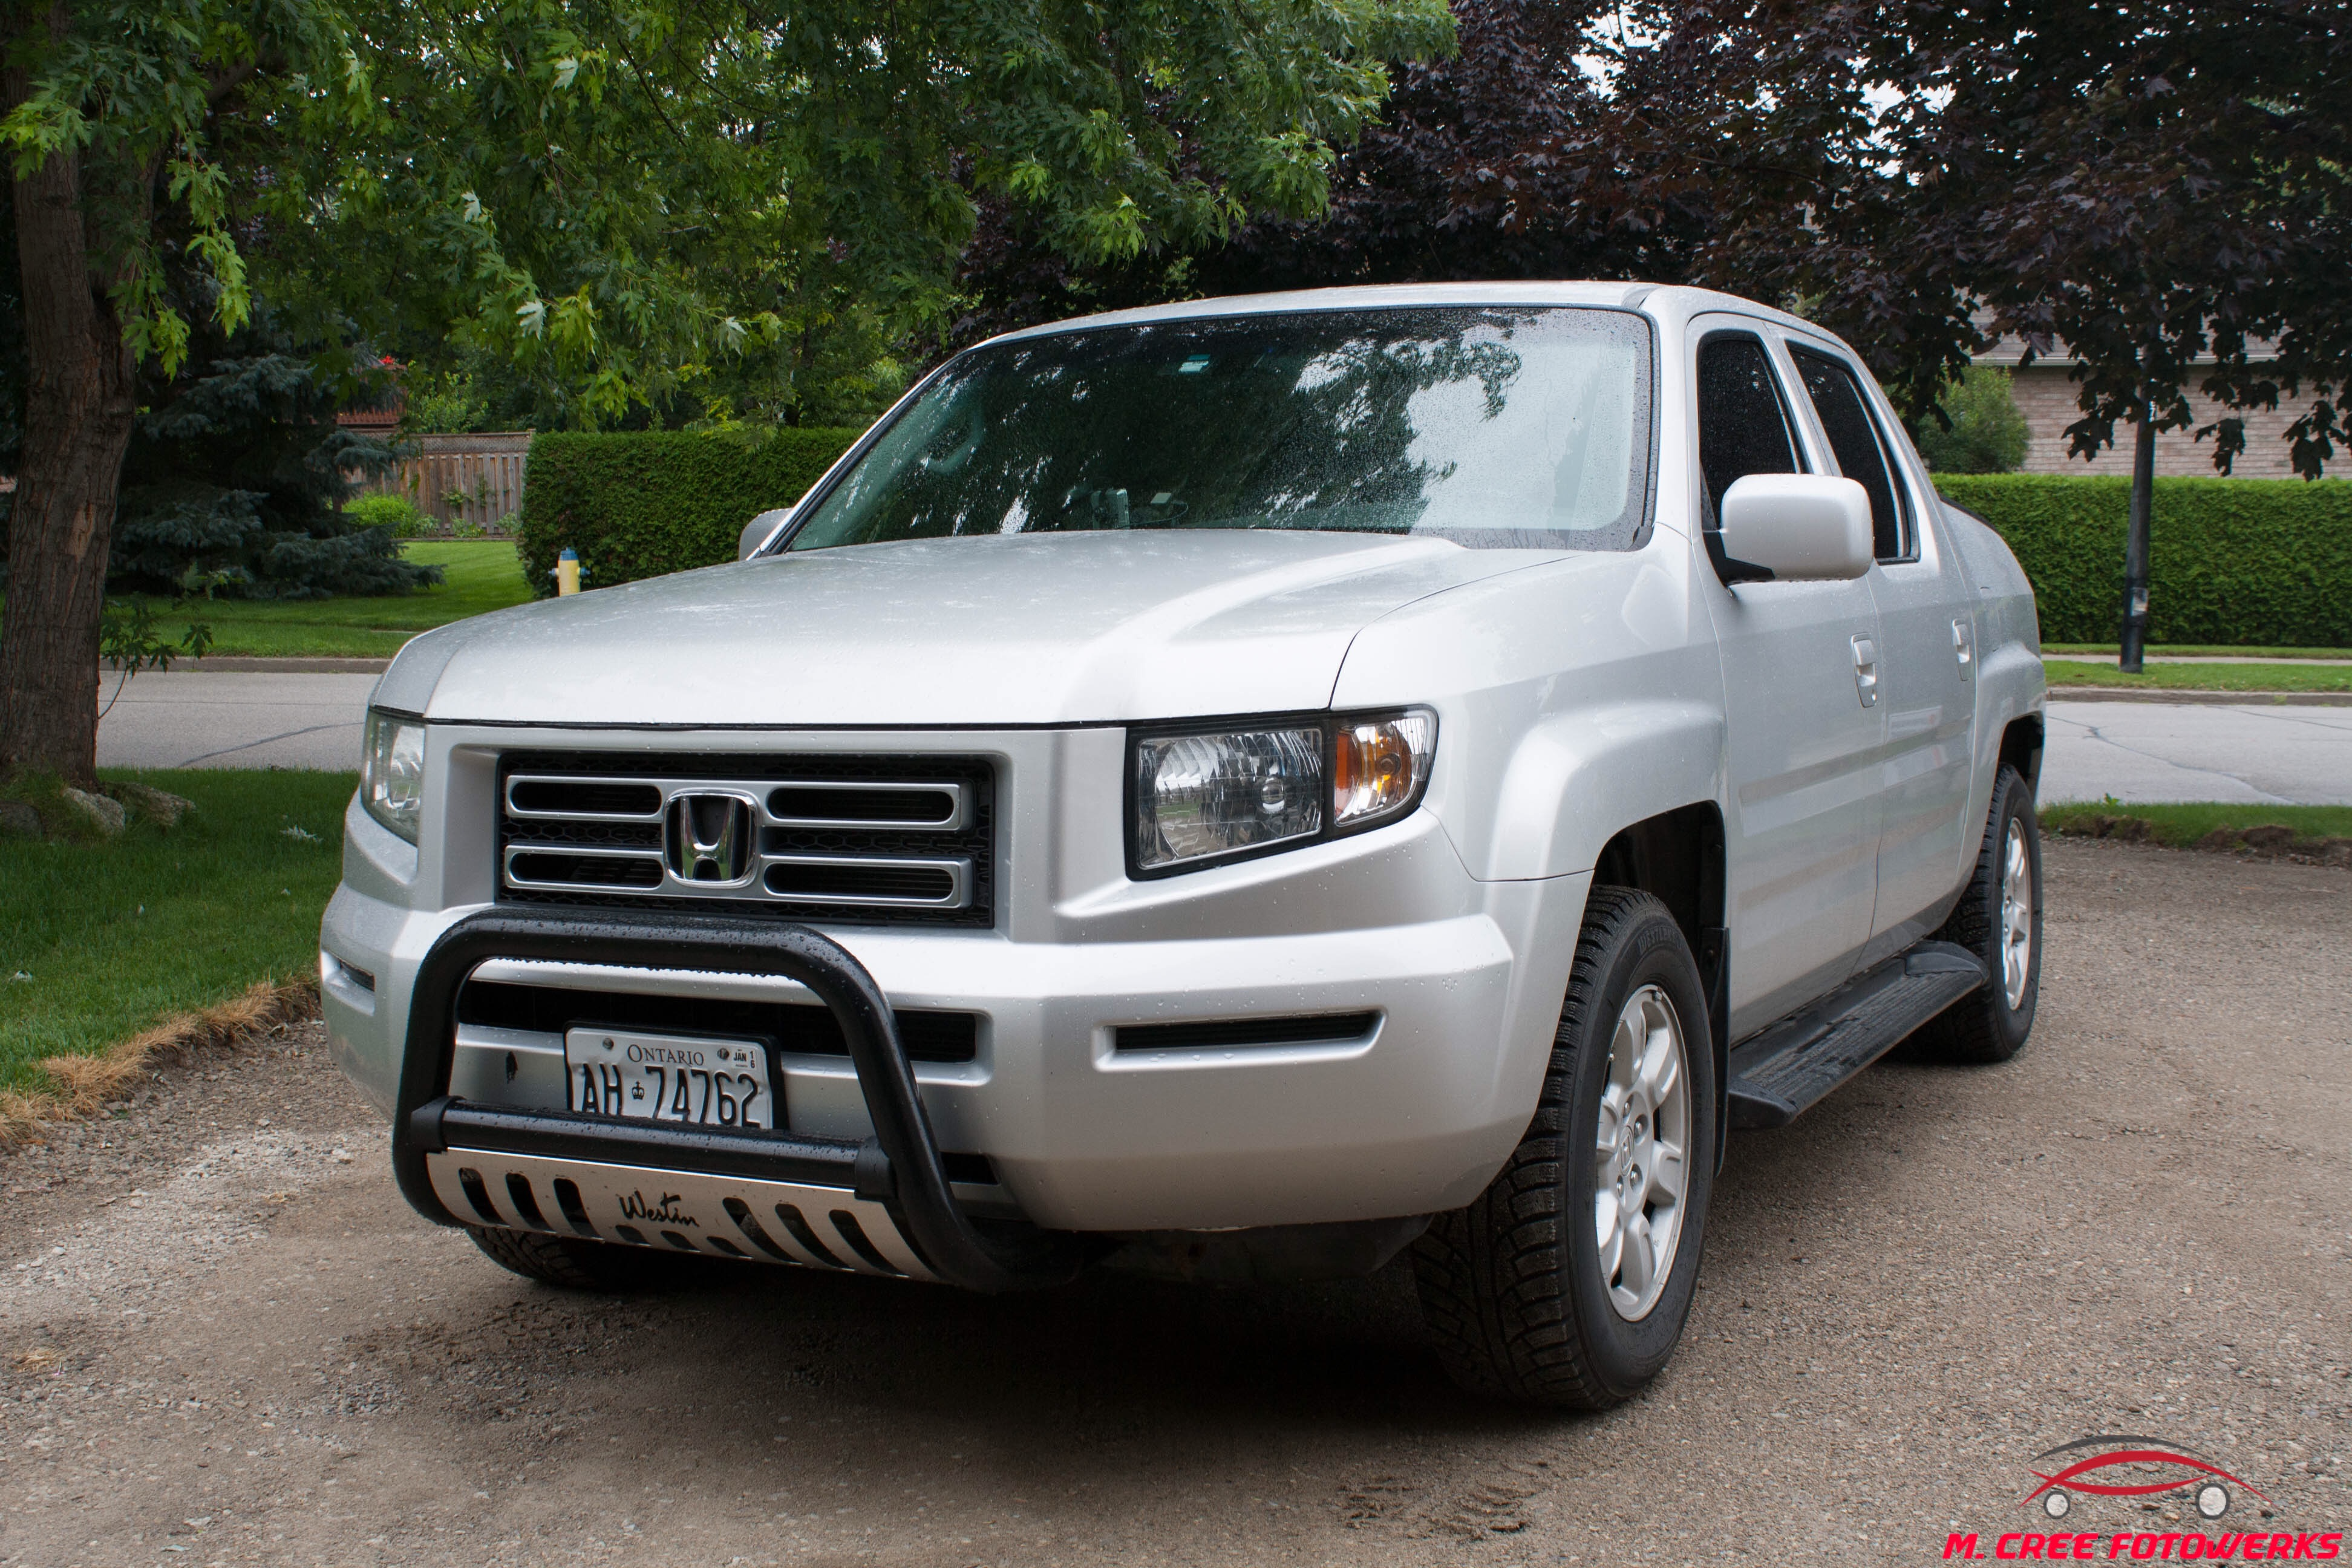 My Ford Touch Screen Is Black >> My baby, 06' Ridgeline RTL. Exterior: Westin bull bar ...